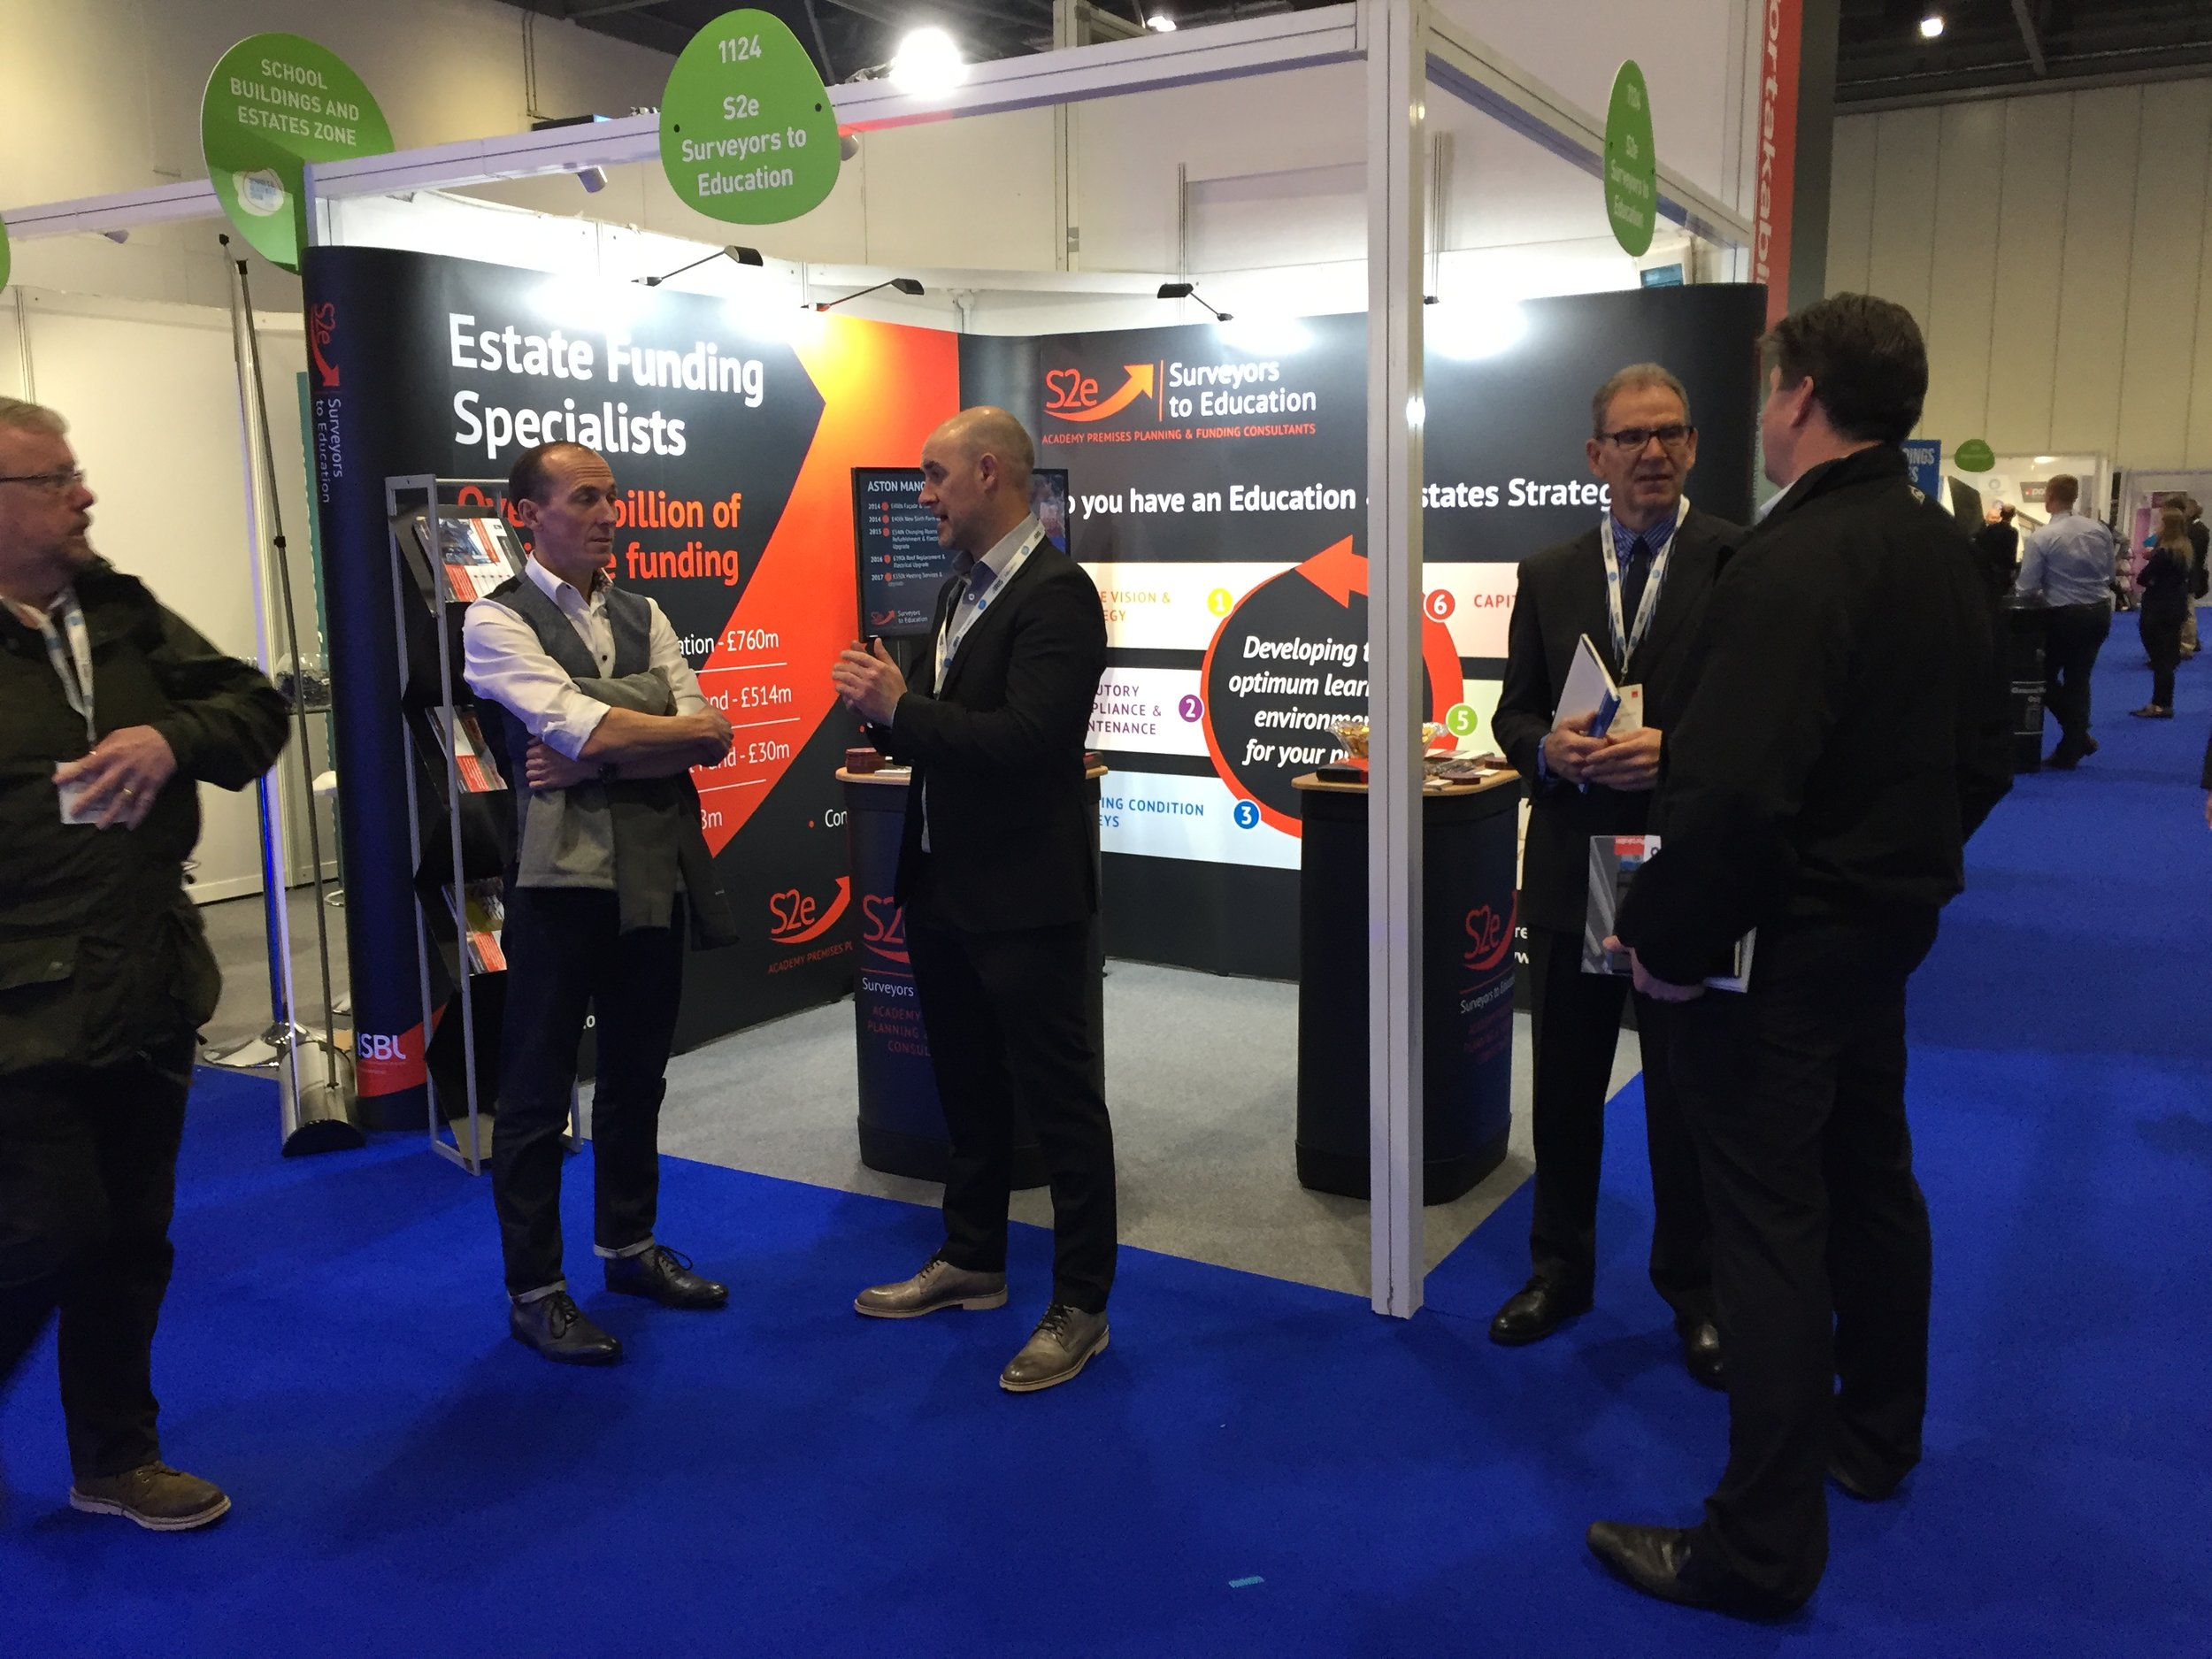 S2e exhibiting at the Schools and Academies Show 2019